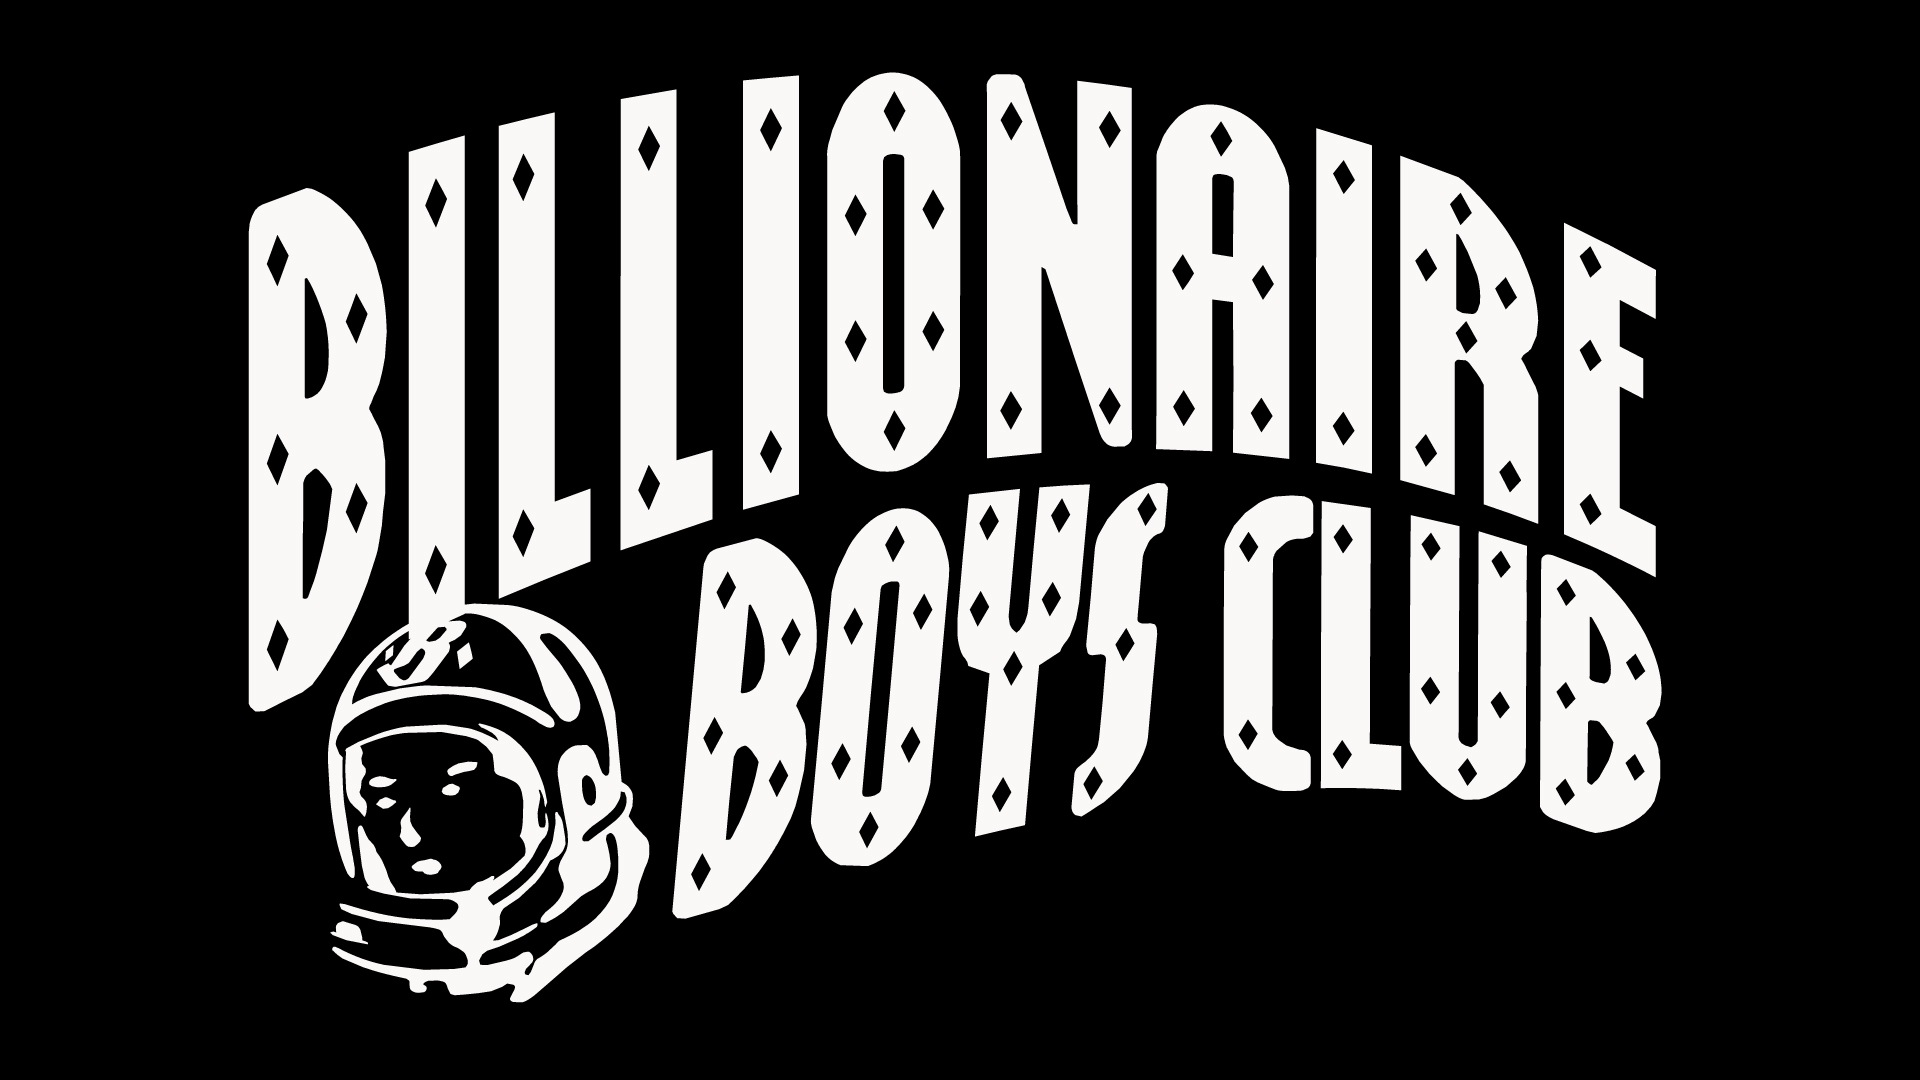 billionaire boys club logo - photo #5